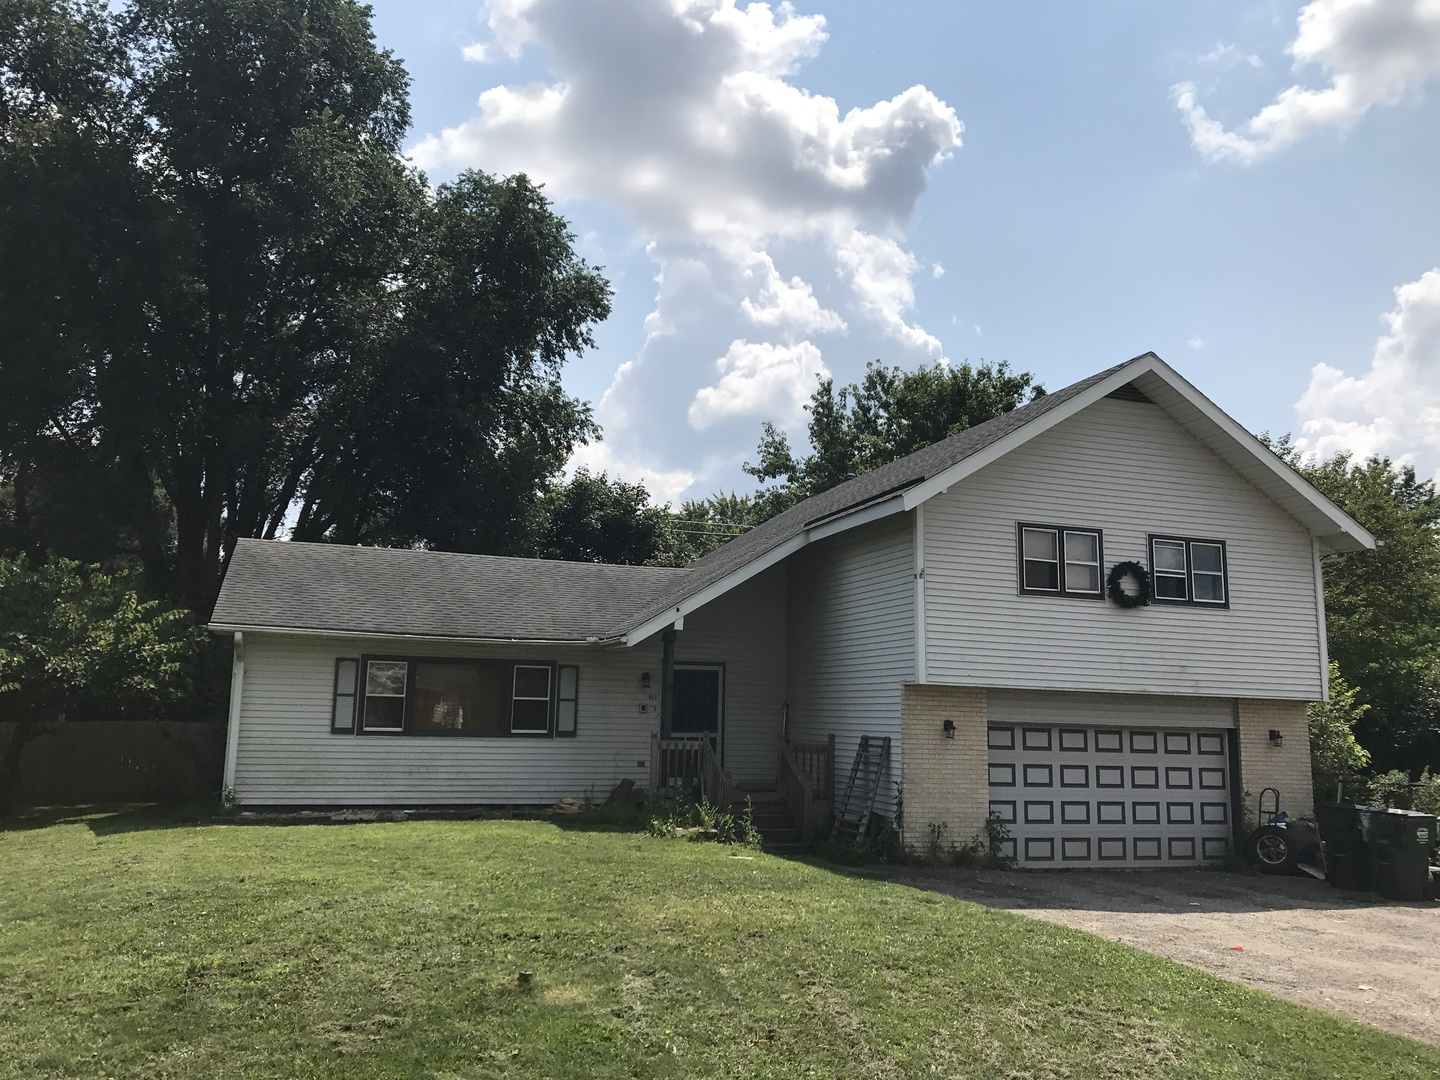 911 North Avenue, Crystal Lake in Mc Henry County, IL 60014 Home for Sale